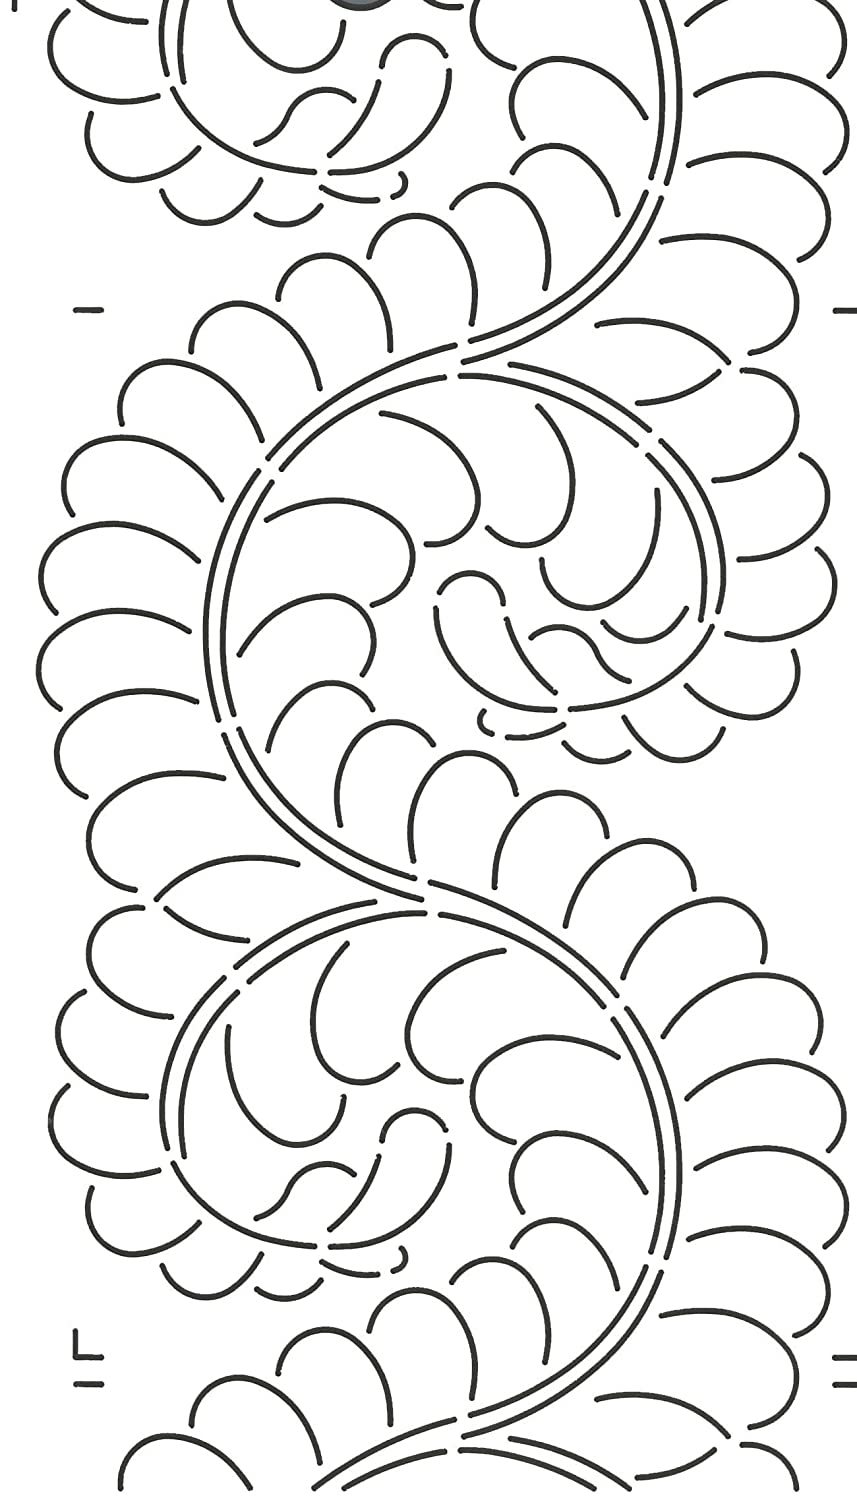 Quilting Creations Feather Border for Use with 422QC Quilt Stencil, 8 8 414QC